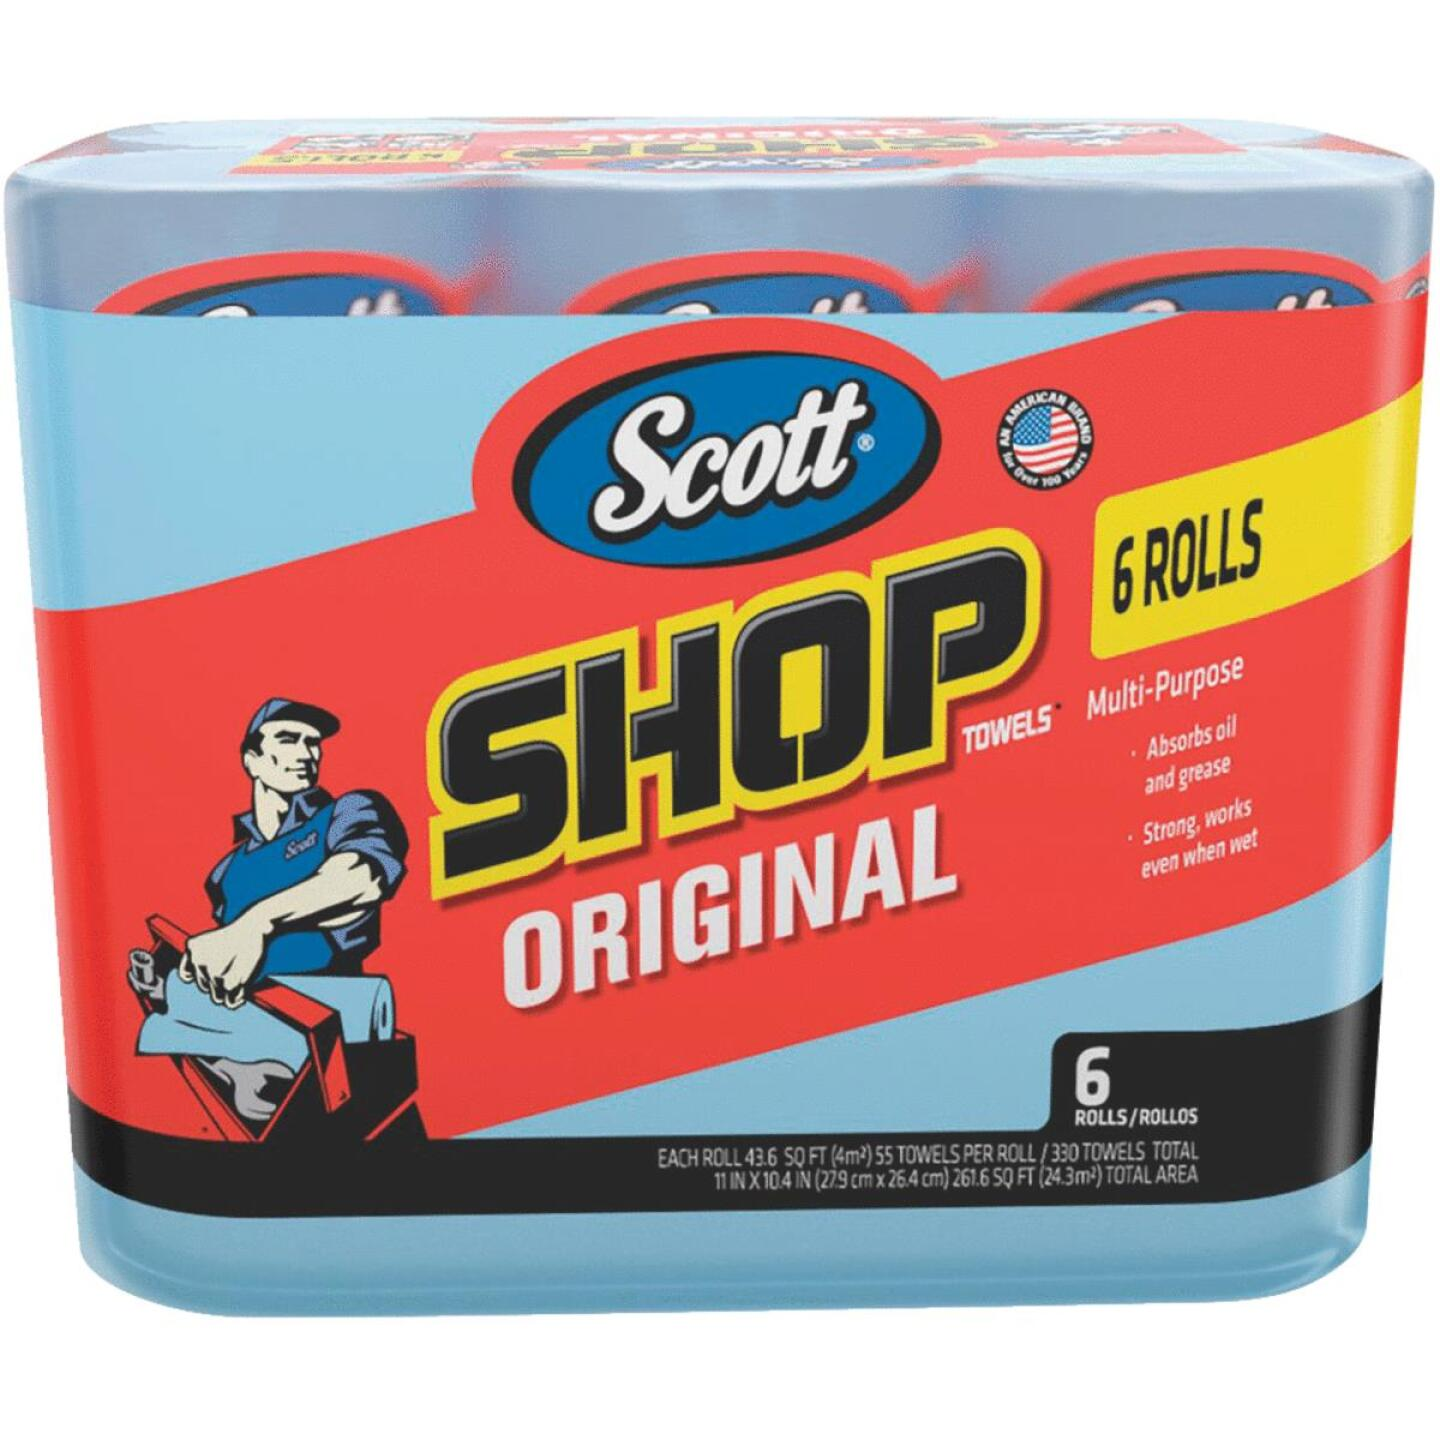 Scott 11 In. W x 10.4 In. L Disposable Original Shop Towel (6-Roll/330-Sheets) Image 1